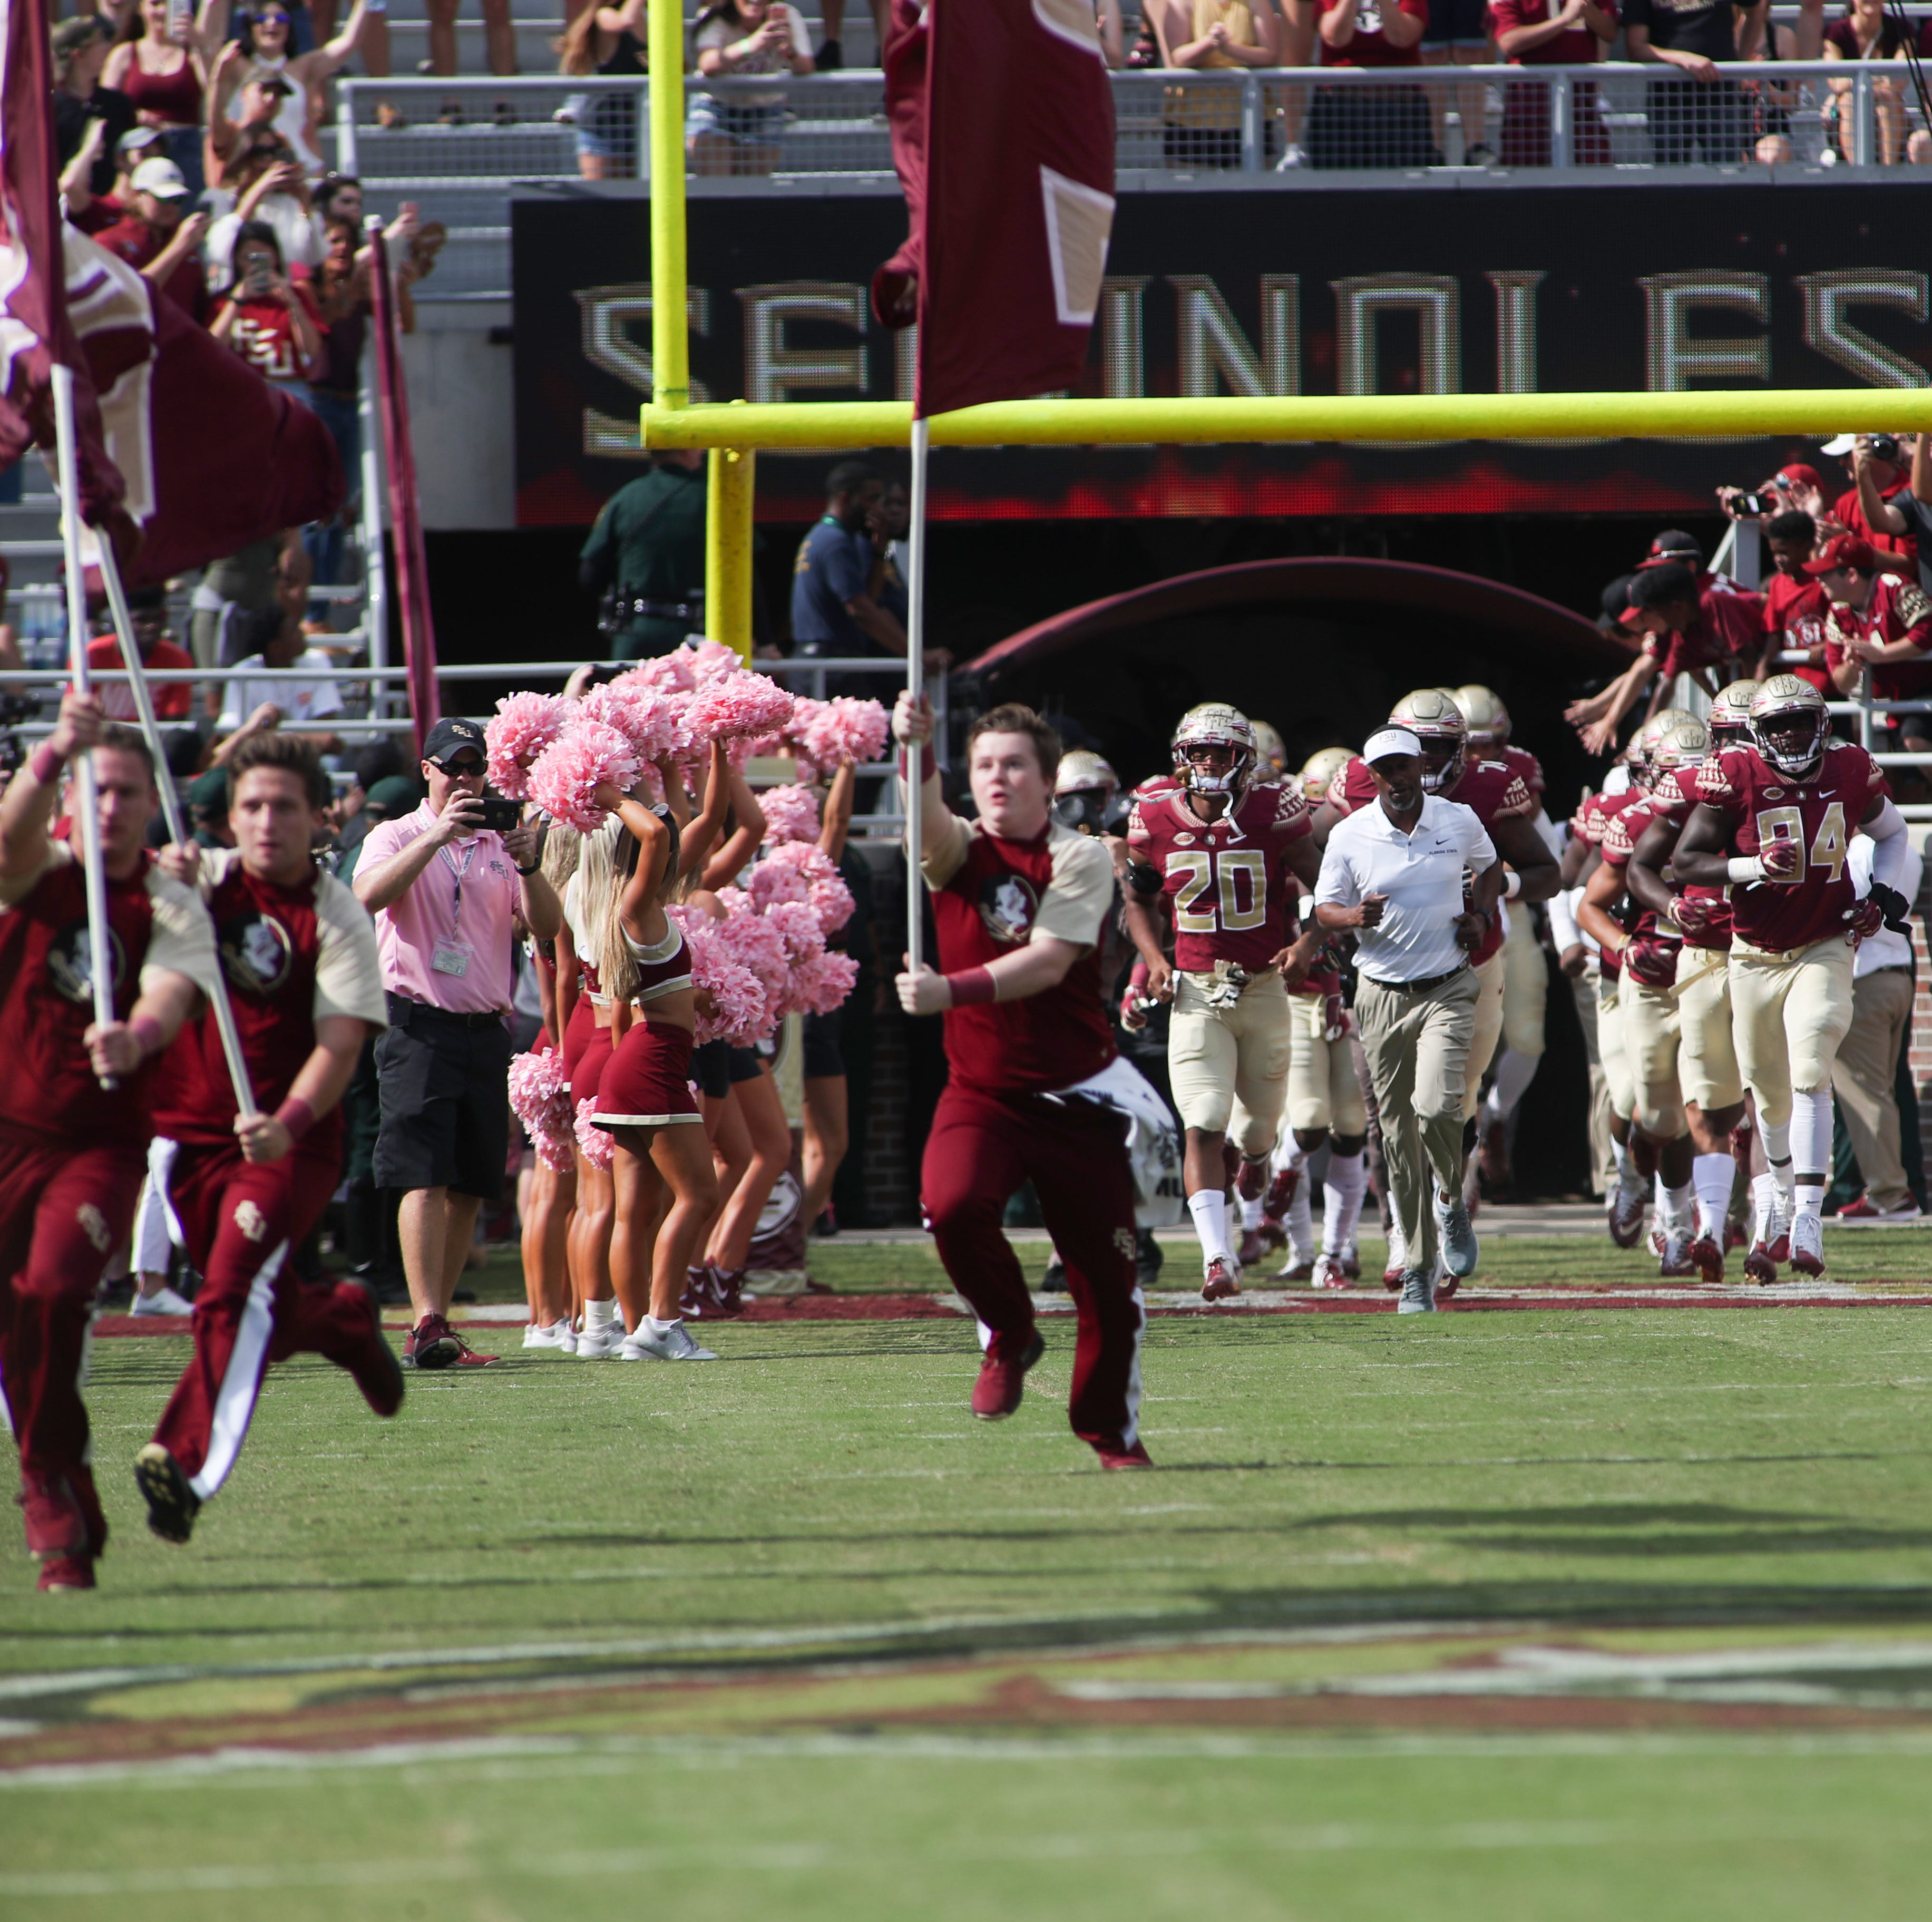 Florida State's 2019 football schedule released